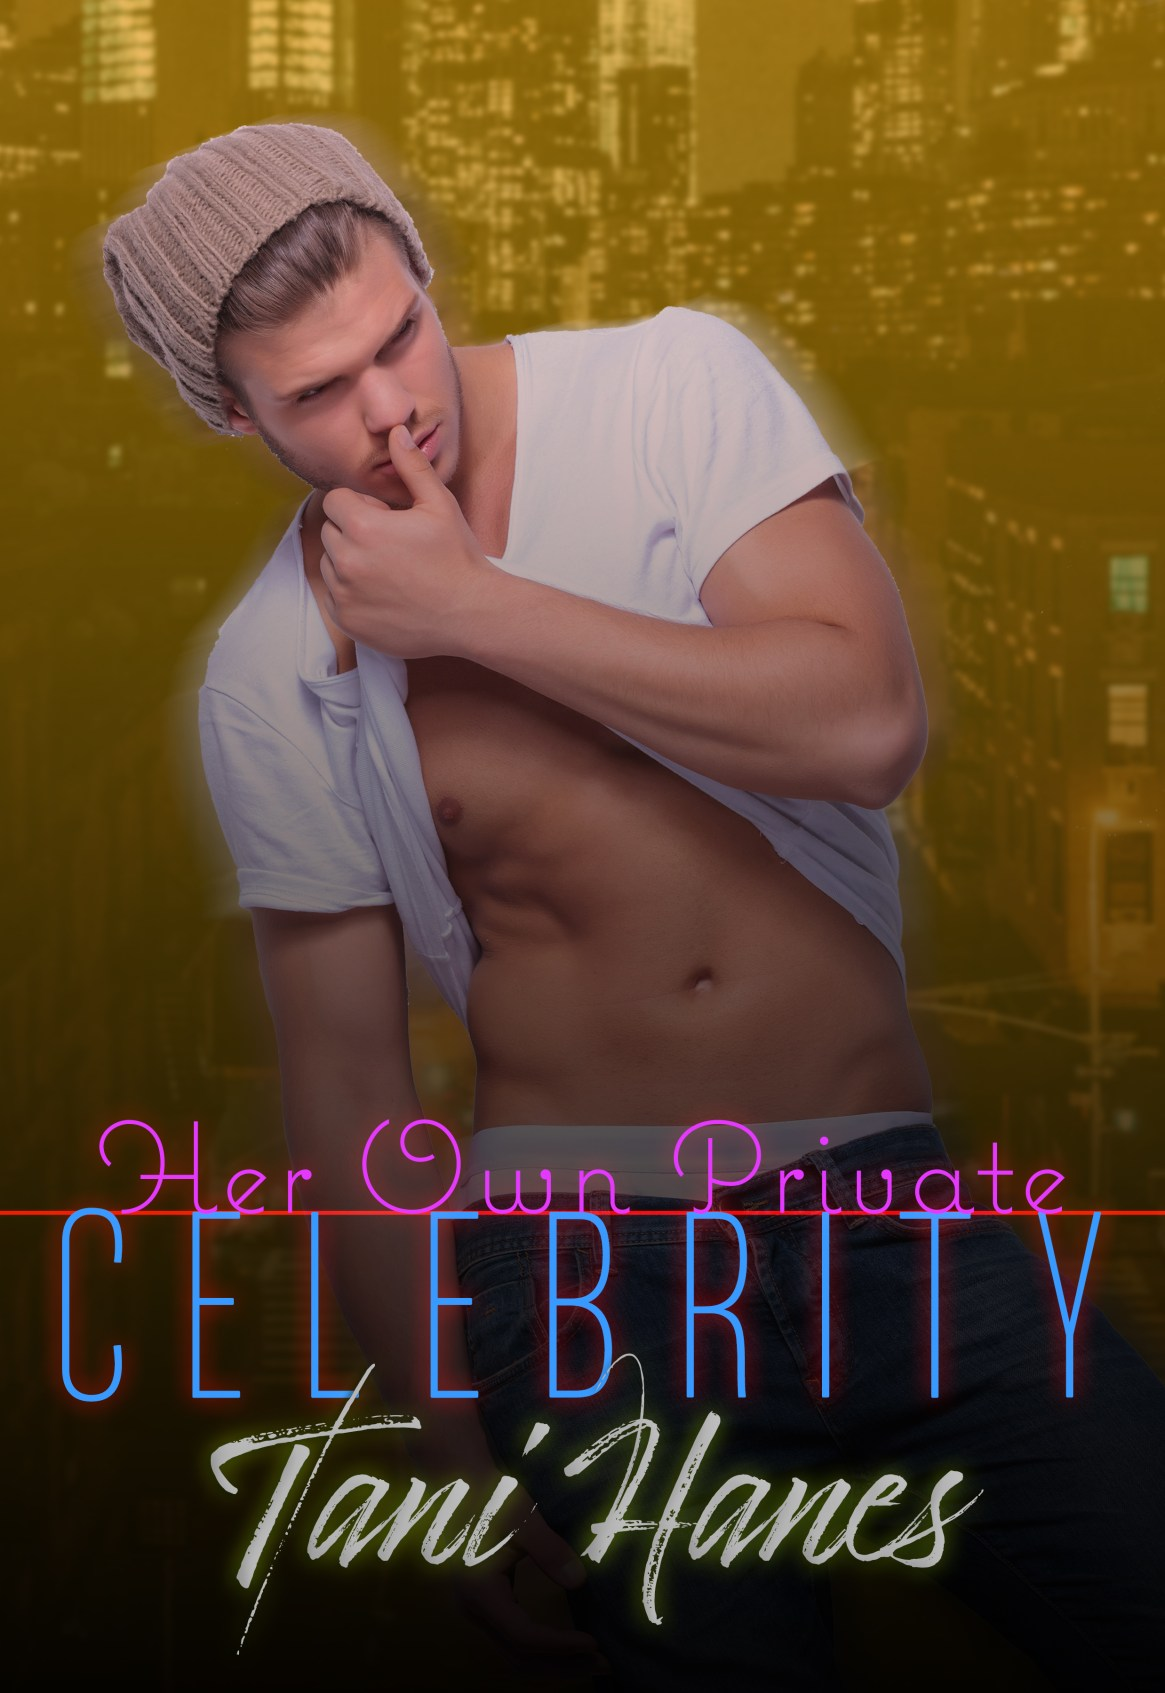 Her Own Private Celebrity_Light